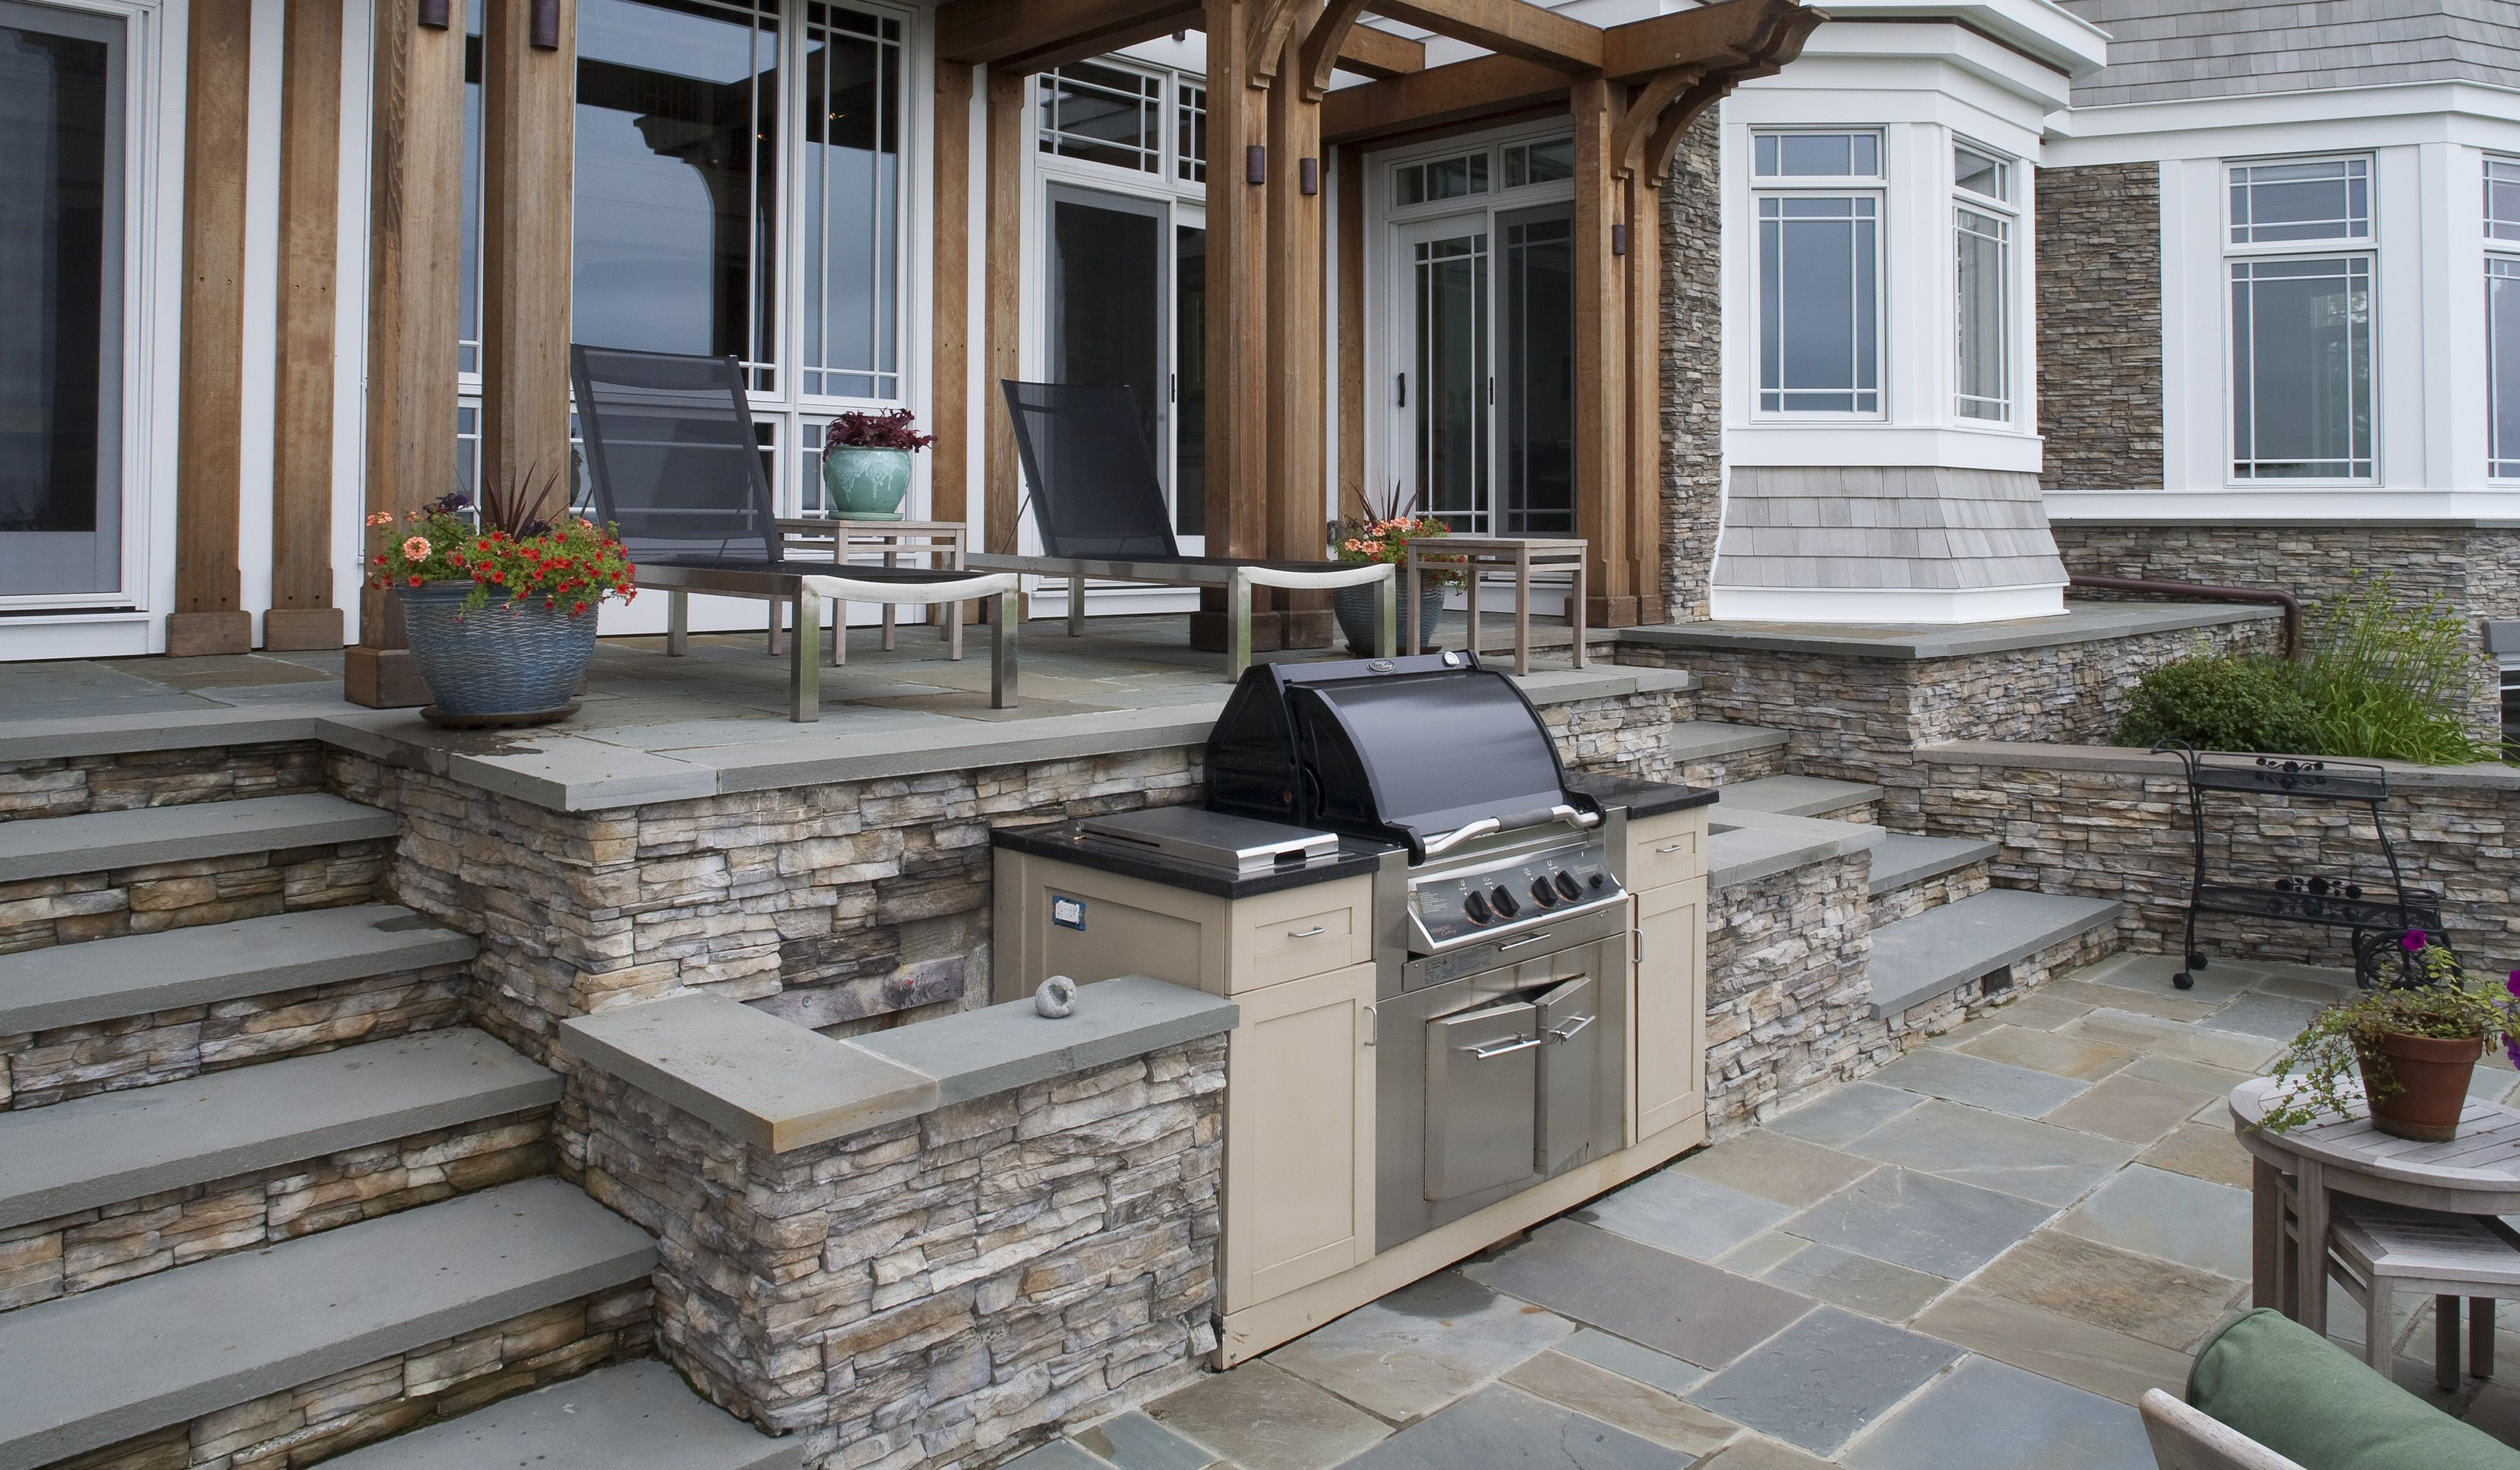 Stone Outdoor Kitchen And Patio